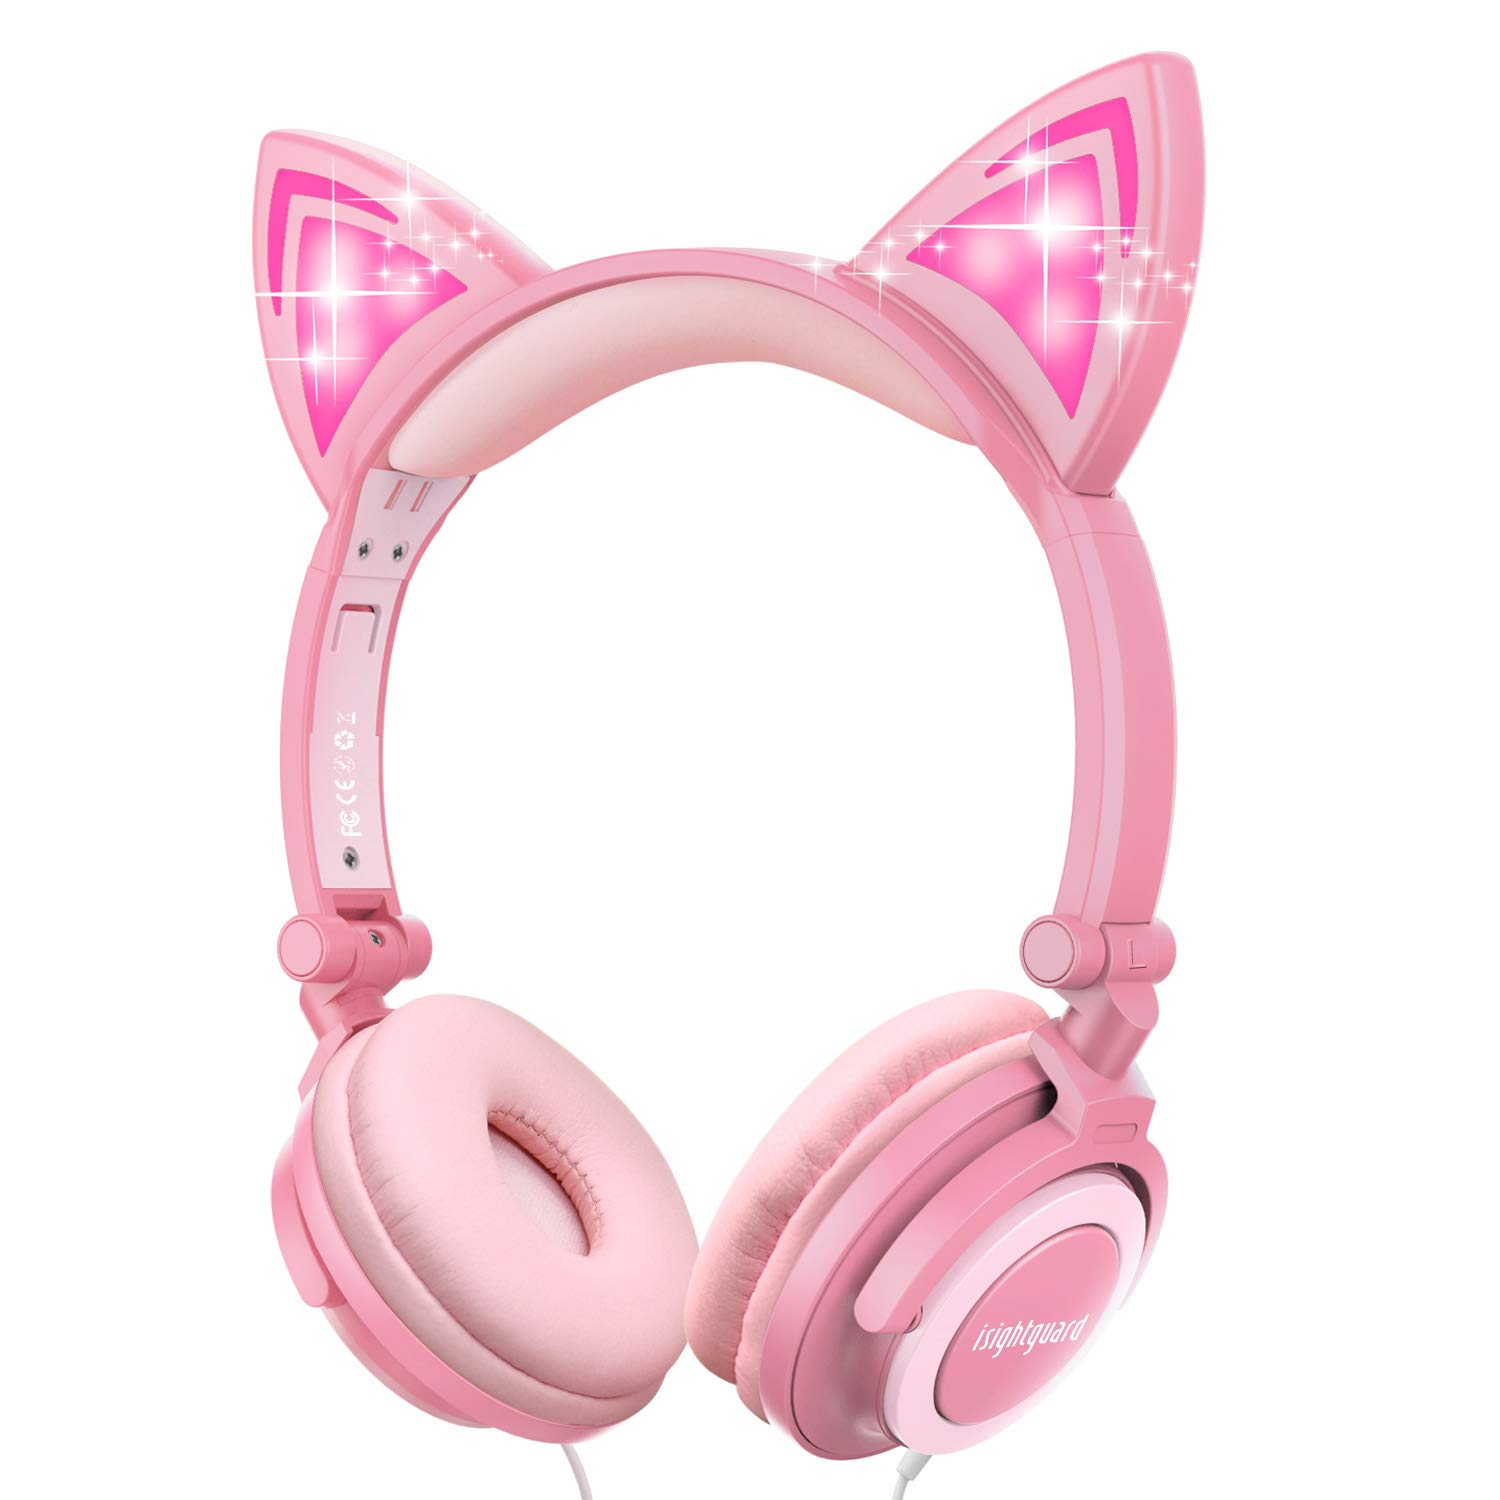 Isightguard Kids Headphones, Wired Headphones On Ear, Cat Ear Headphones with LED for Girls, 3.5mm Audio Jack for Cell Phone (Peach) by isightguard